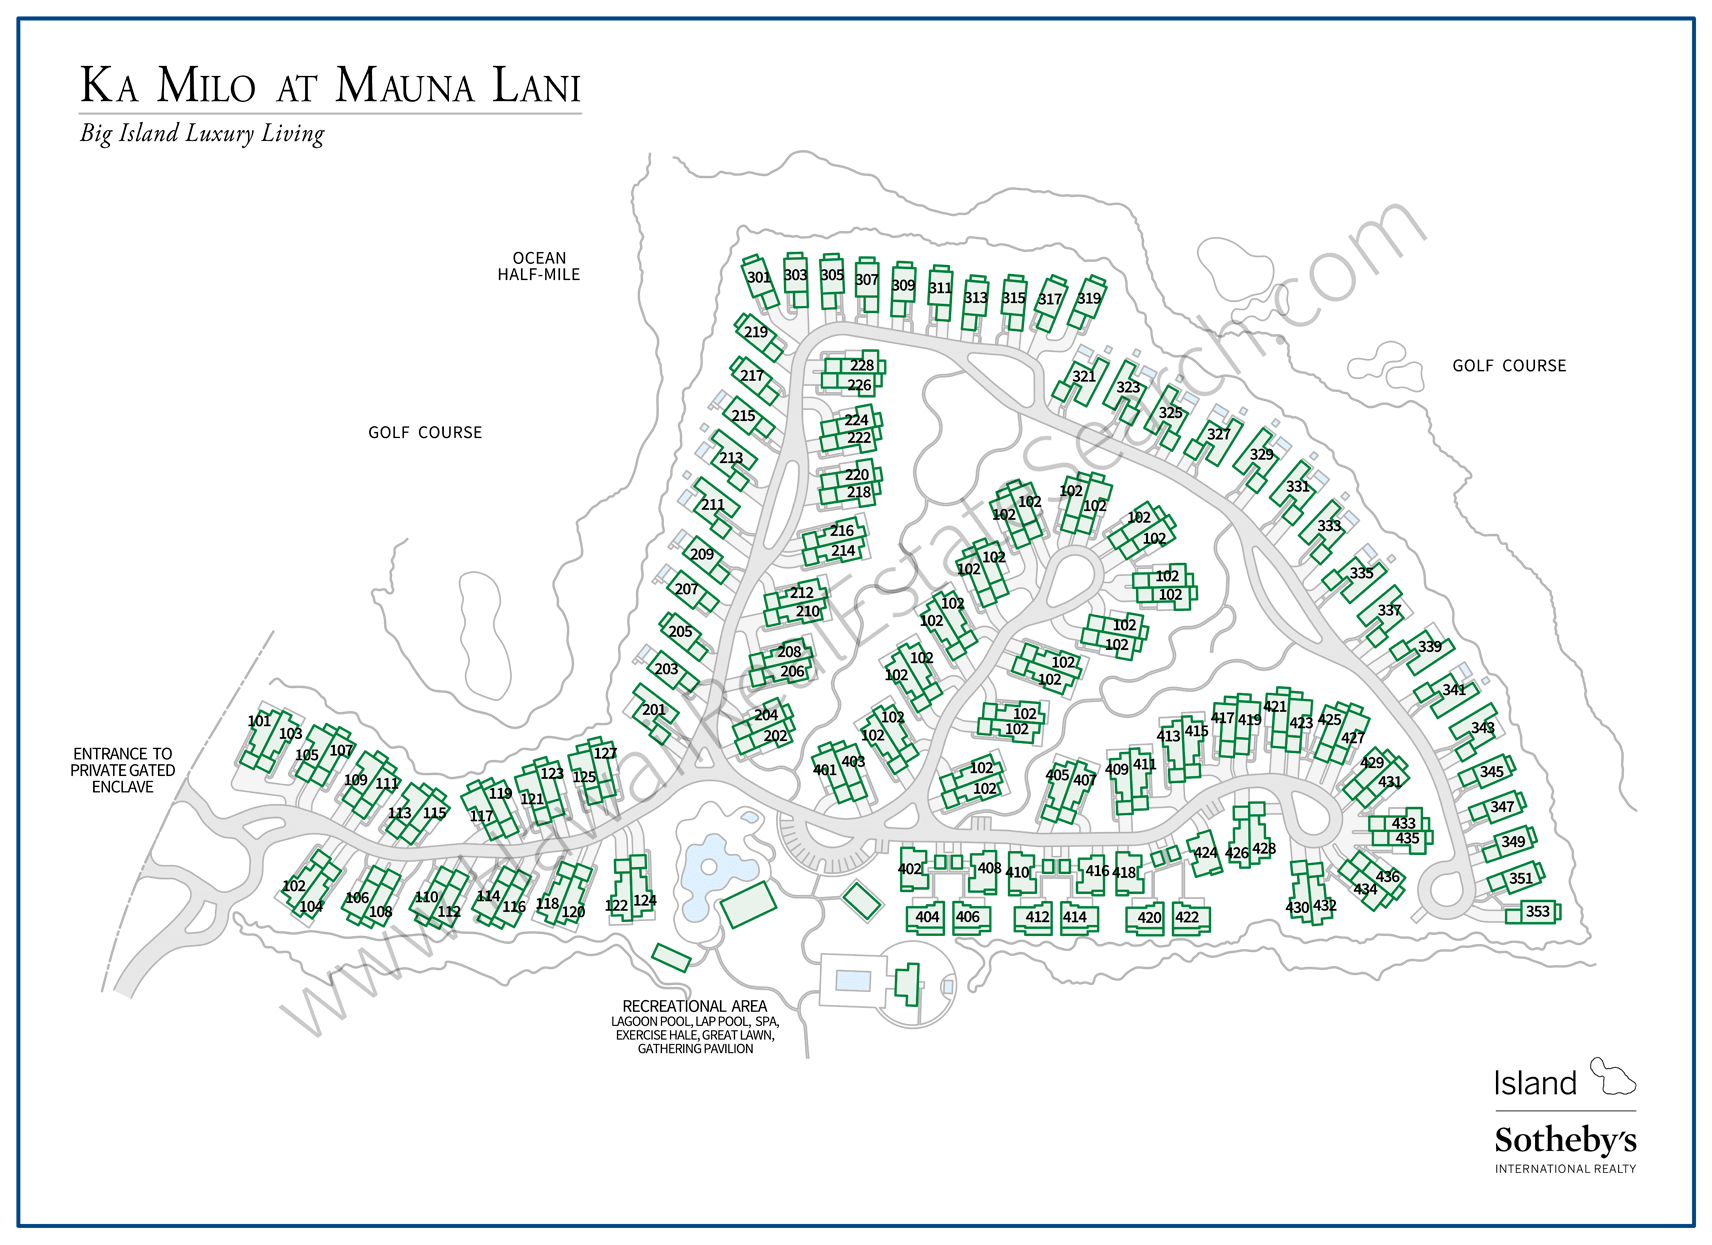 Ka Milo at Mauna Lani Property Map